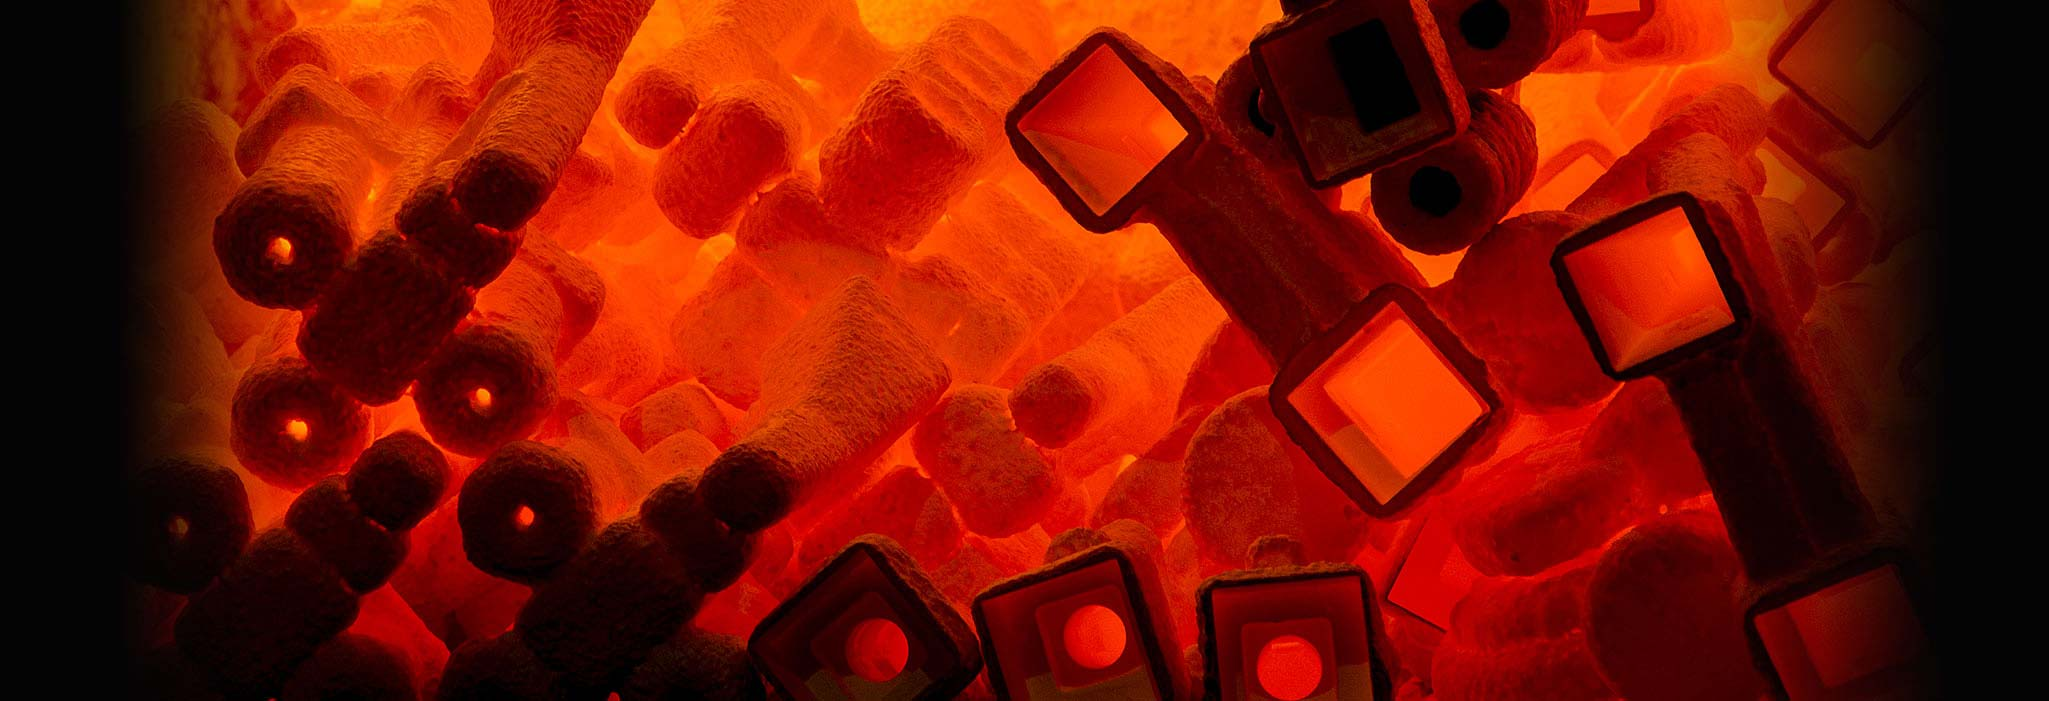 red hot glowing casting molds in kiln